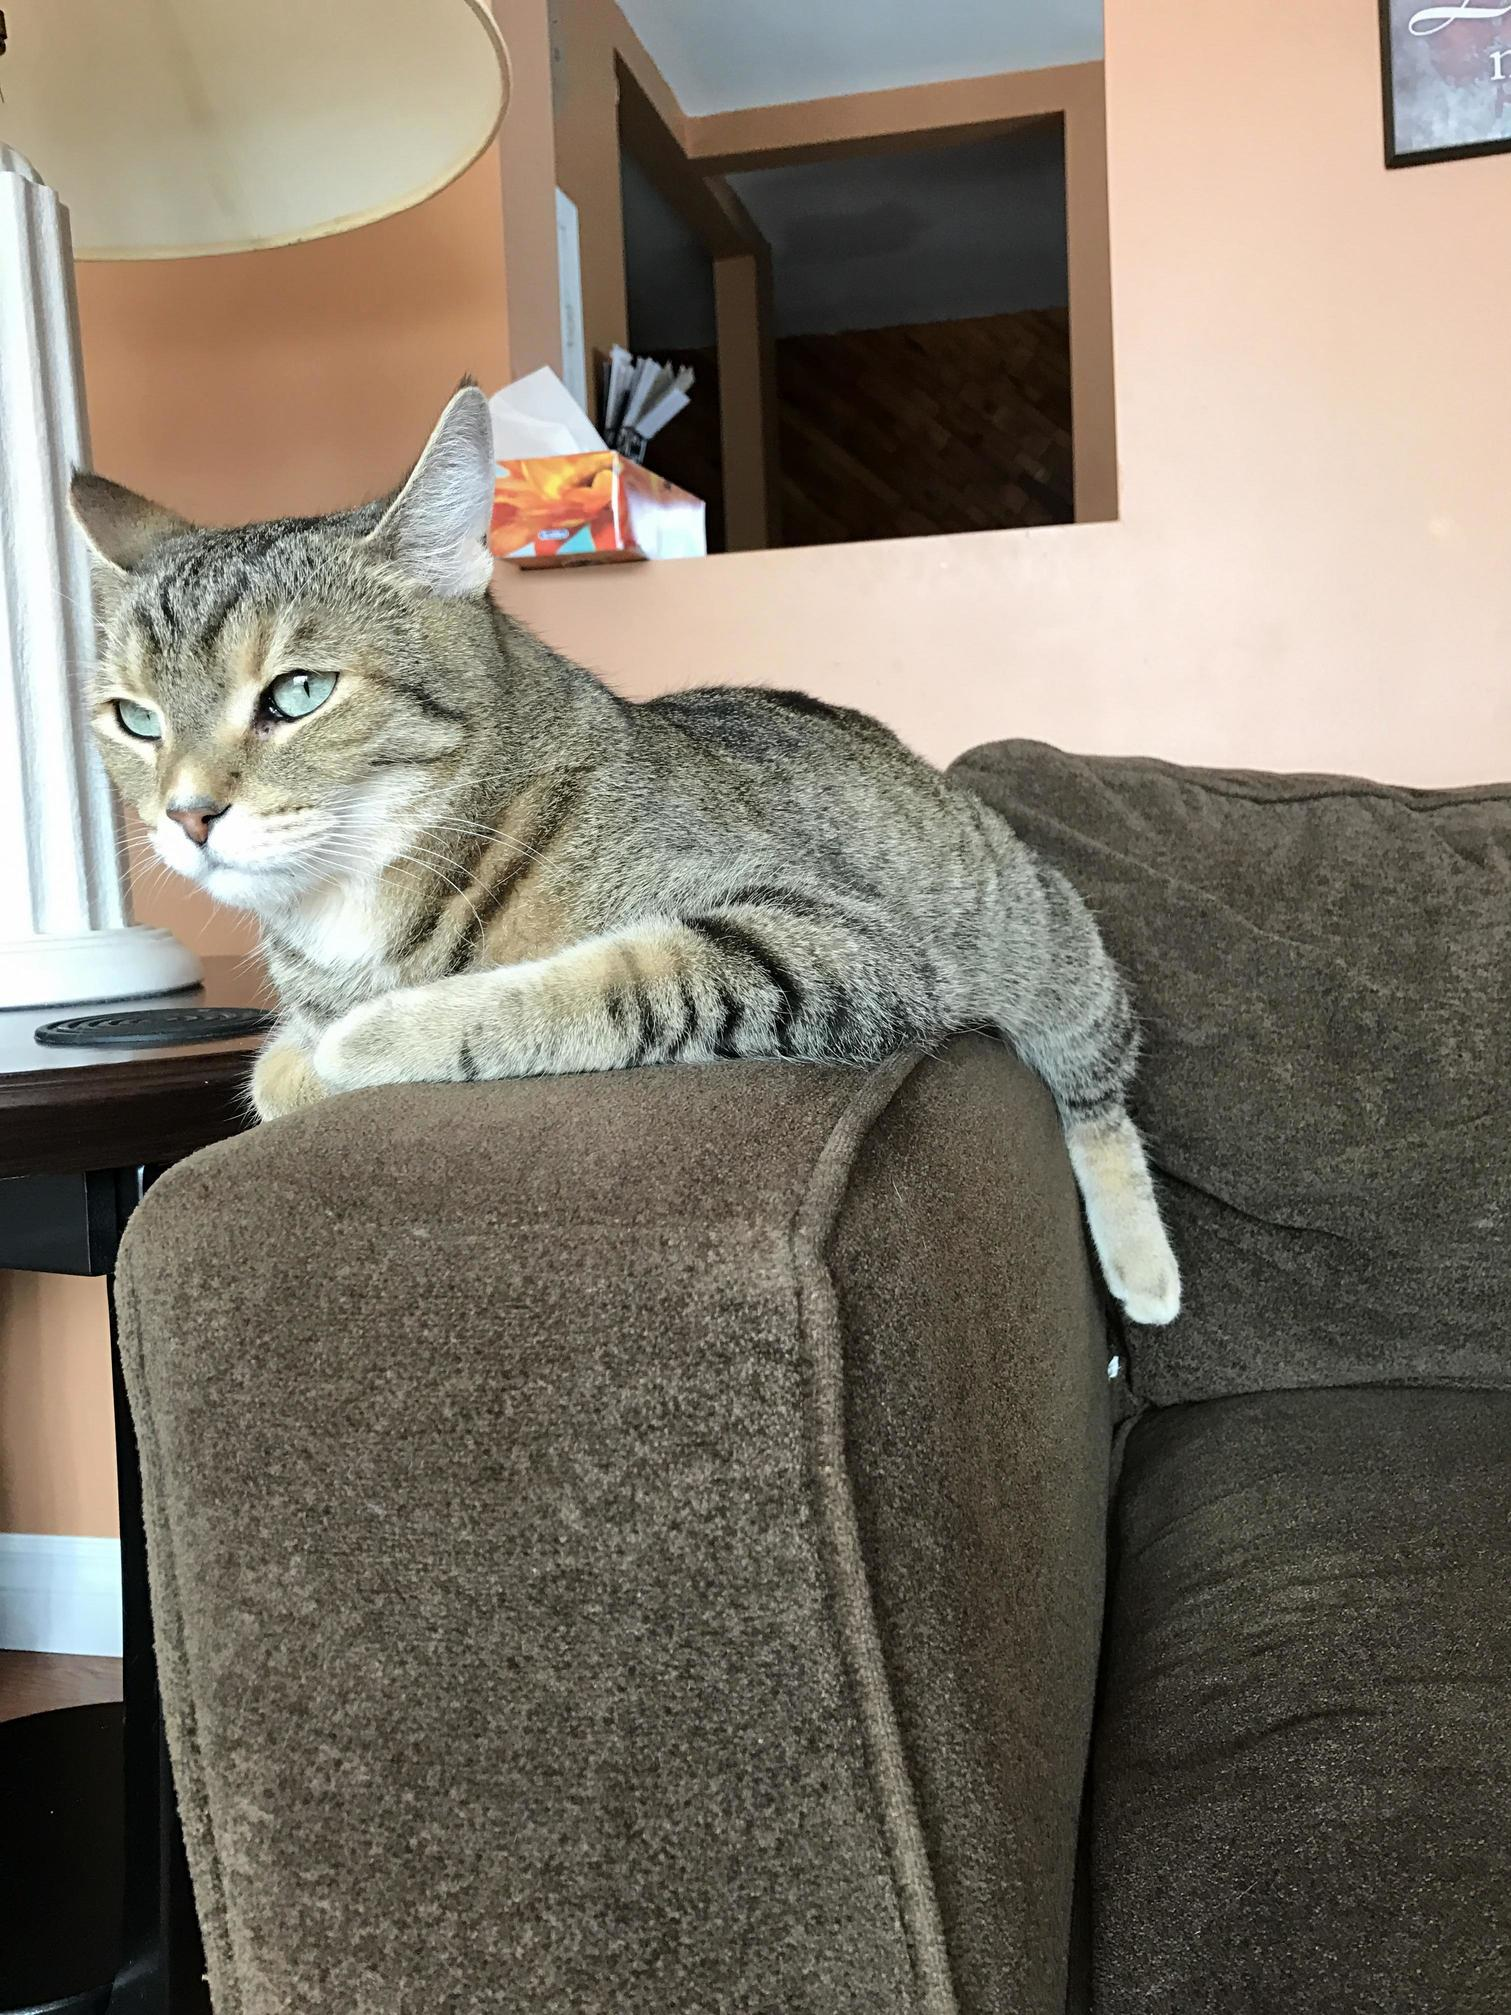 My cat sits on the couch armrest like this